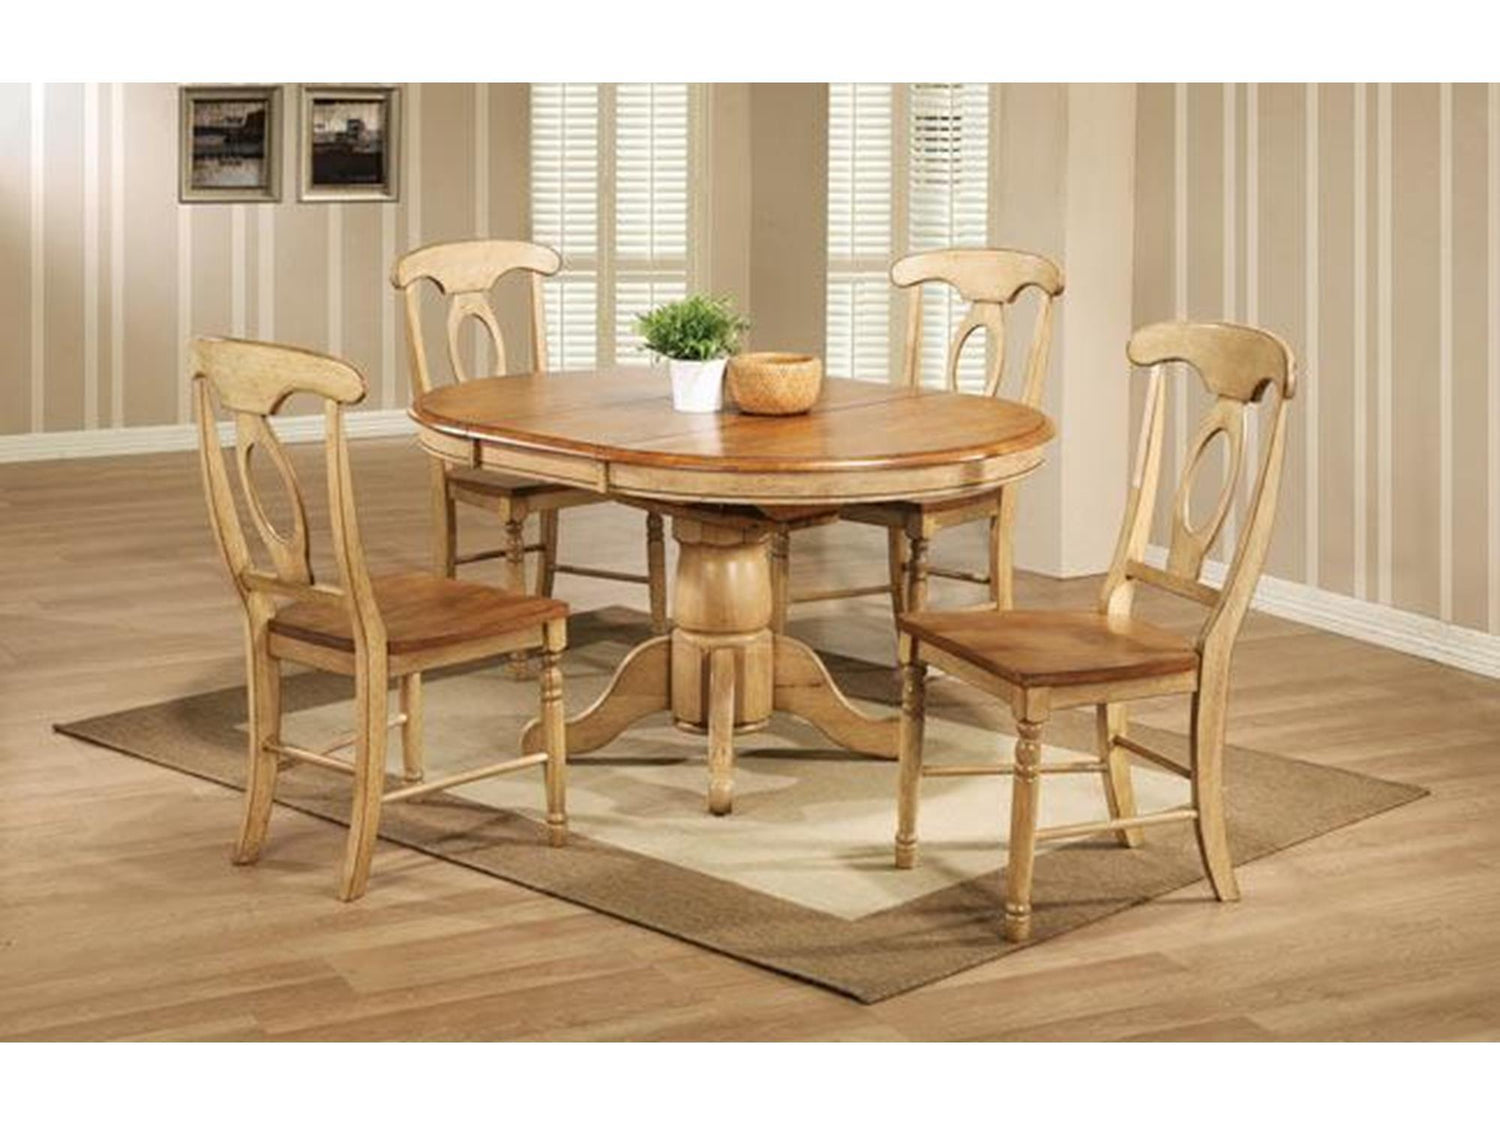 Quails Run 57 Pedestal Table With 15 Butterfly Leaf Dining Furniture In Vancouver Wa Vancouver Woodworks